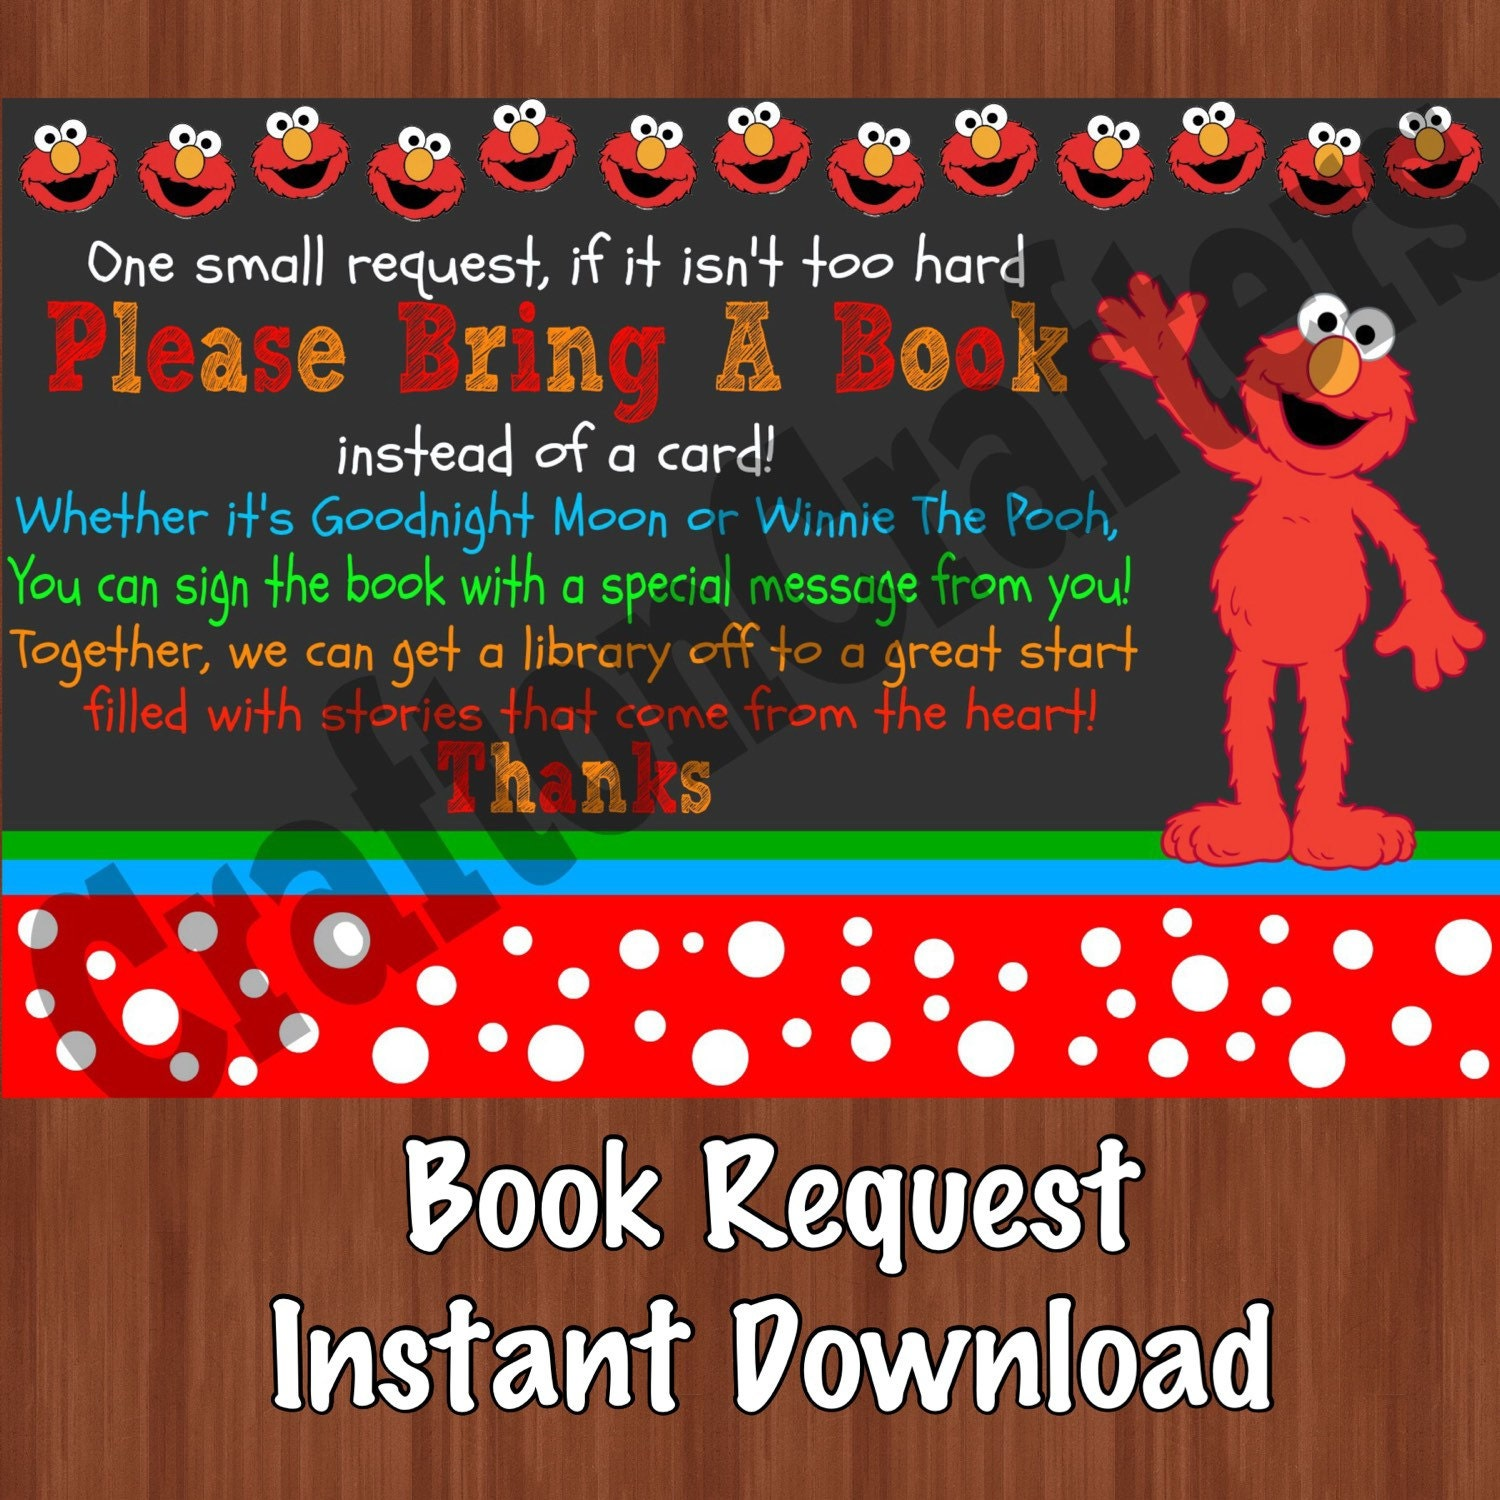 Book Request For Birthday Party Book Request Book Instead